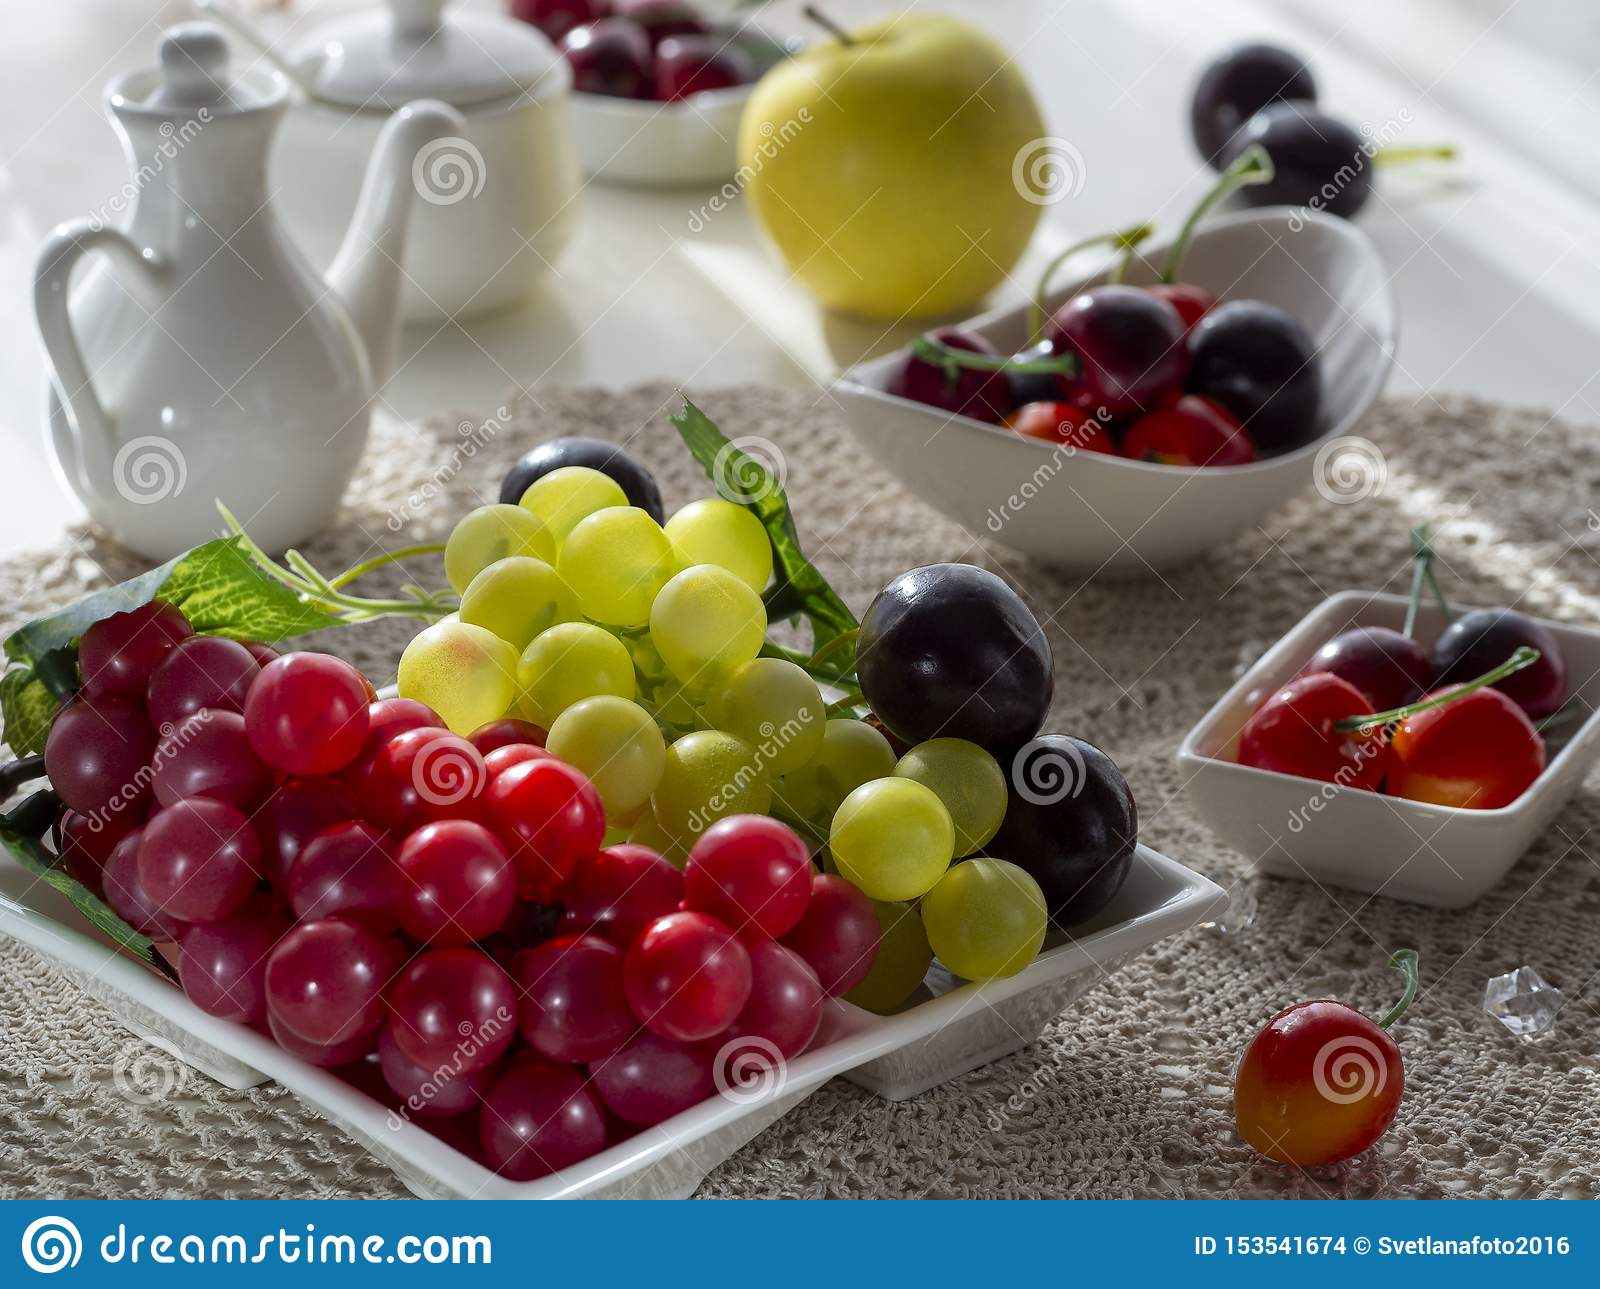 The Light From The Window Falls Beautifully On The Fruit Platter Stock Photo Image Of Bunch Green 153541674